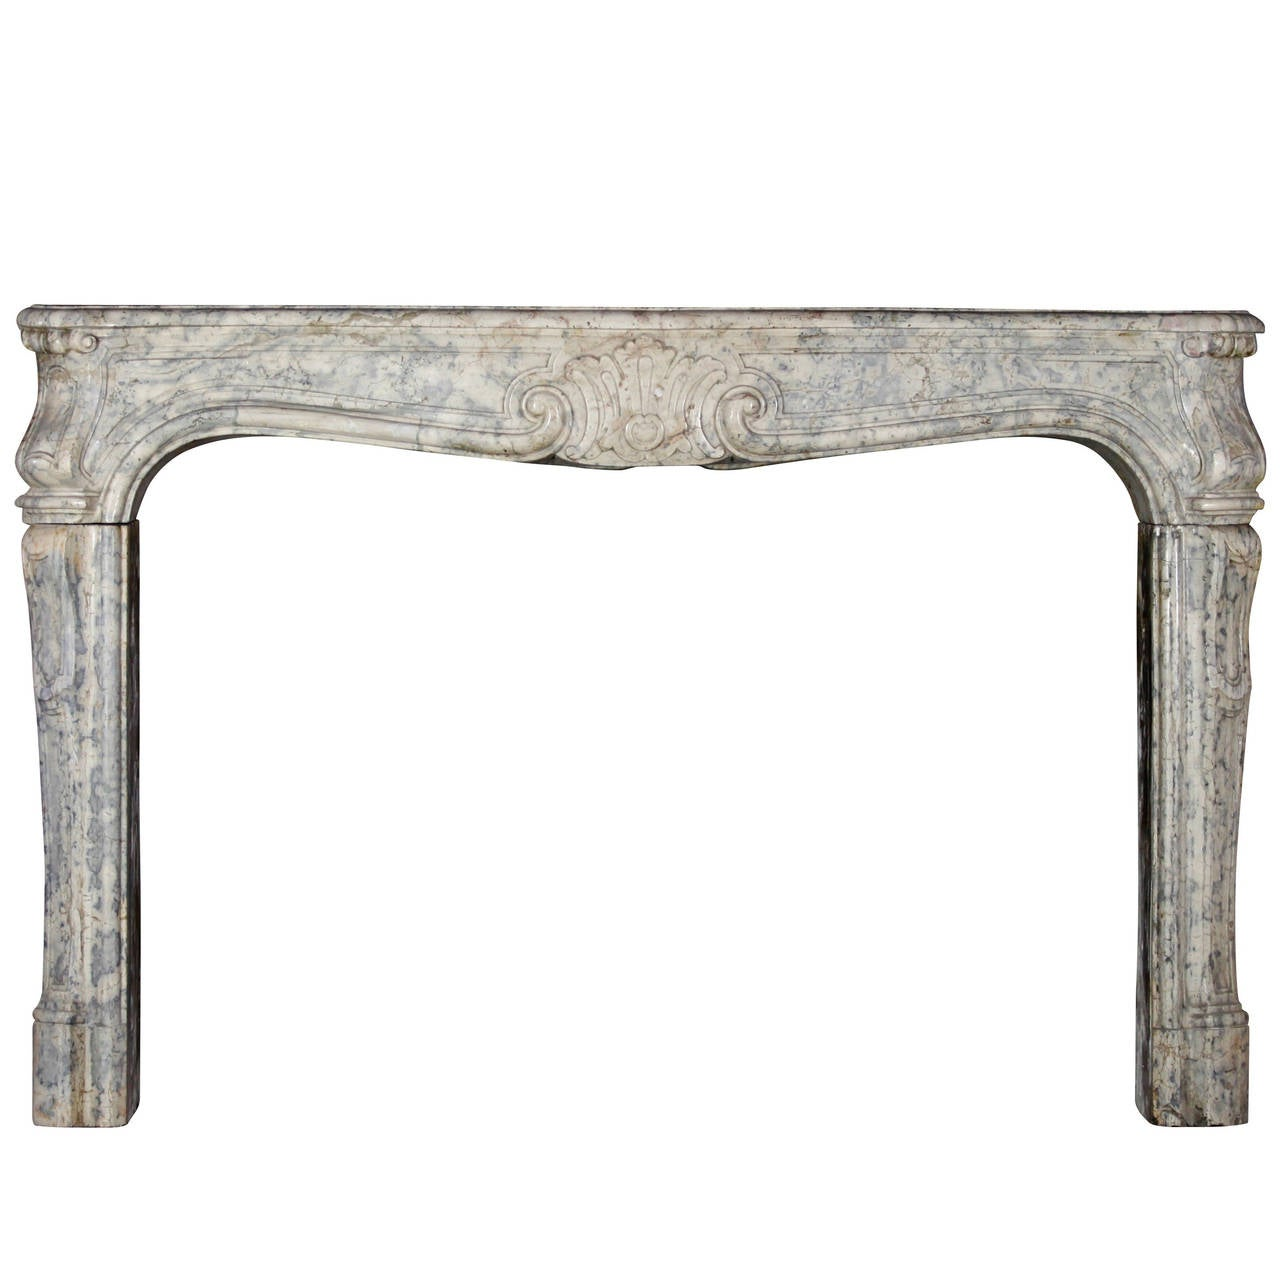 18th Century Unique Hardstone Antique Fireplace Mantel from the Regency Period For Sale